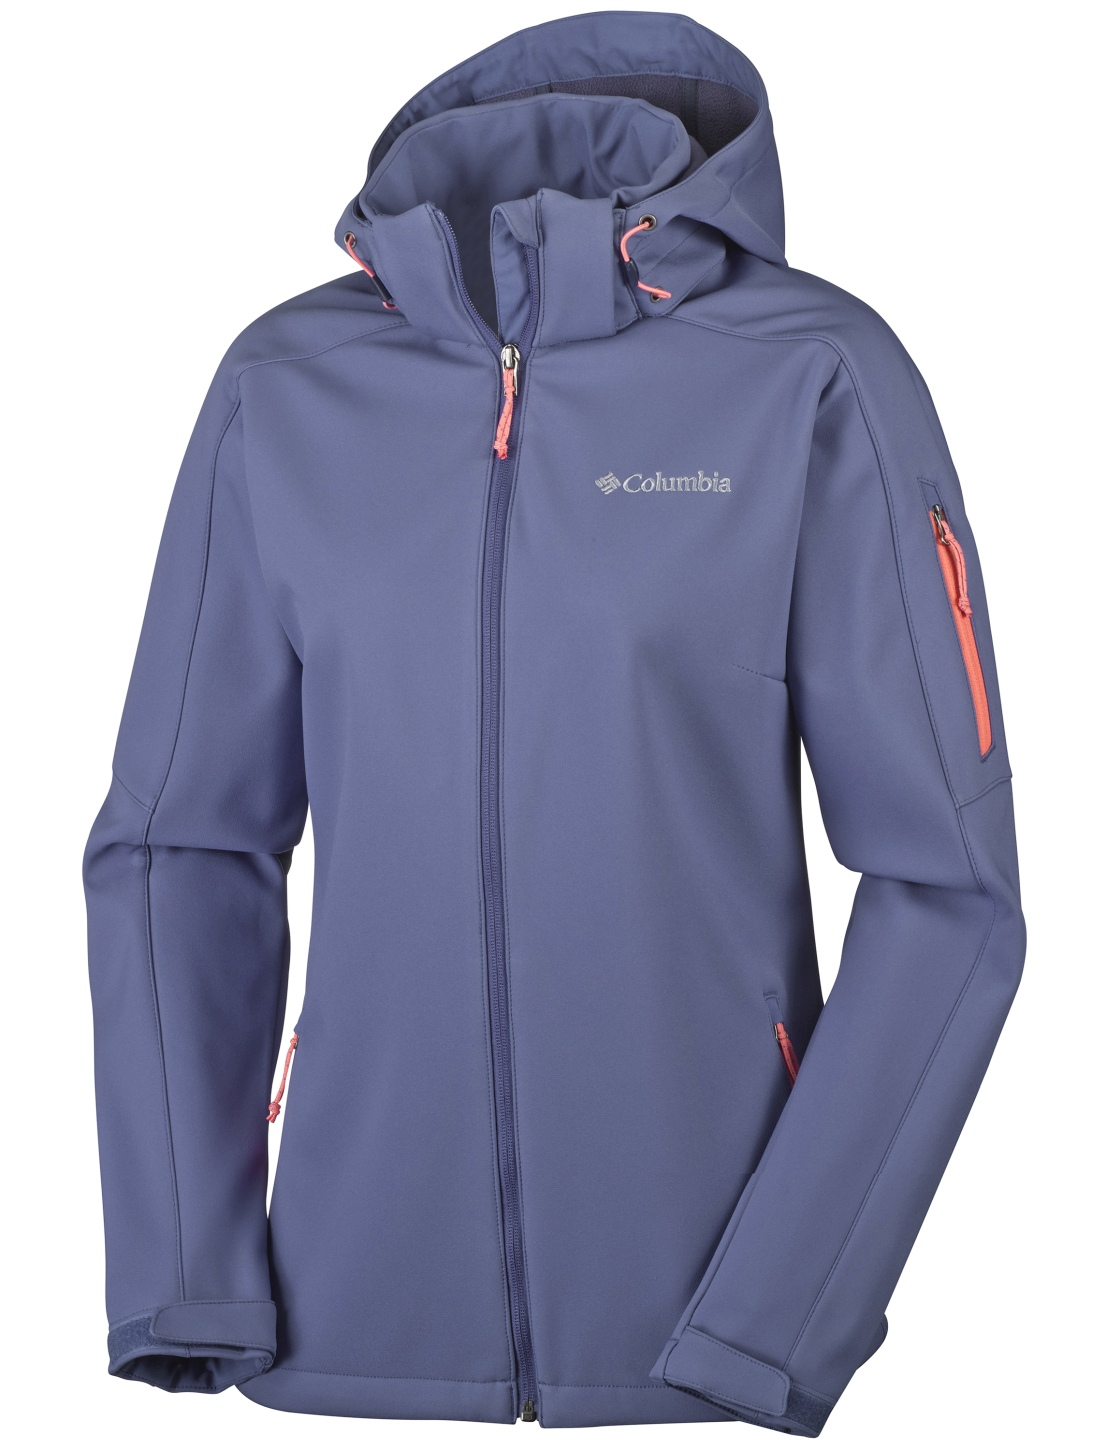 Columbia Women's Cascade Ridge Jacket Bluebell, Hot Coral-30